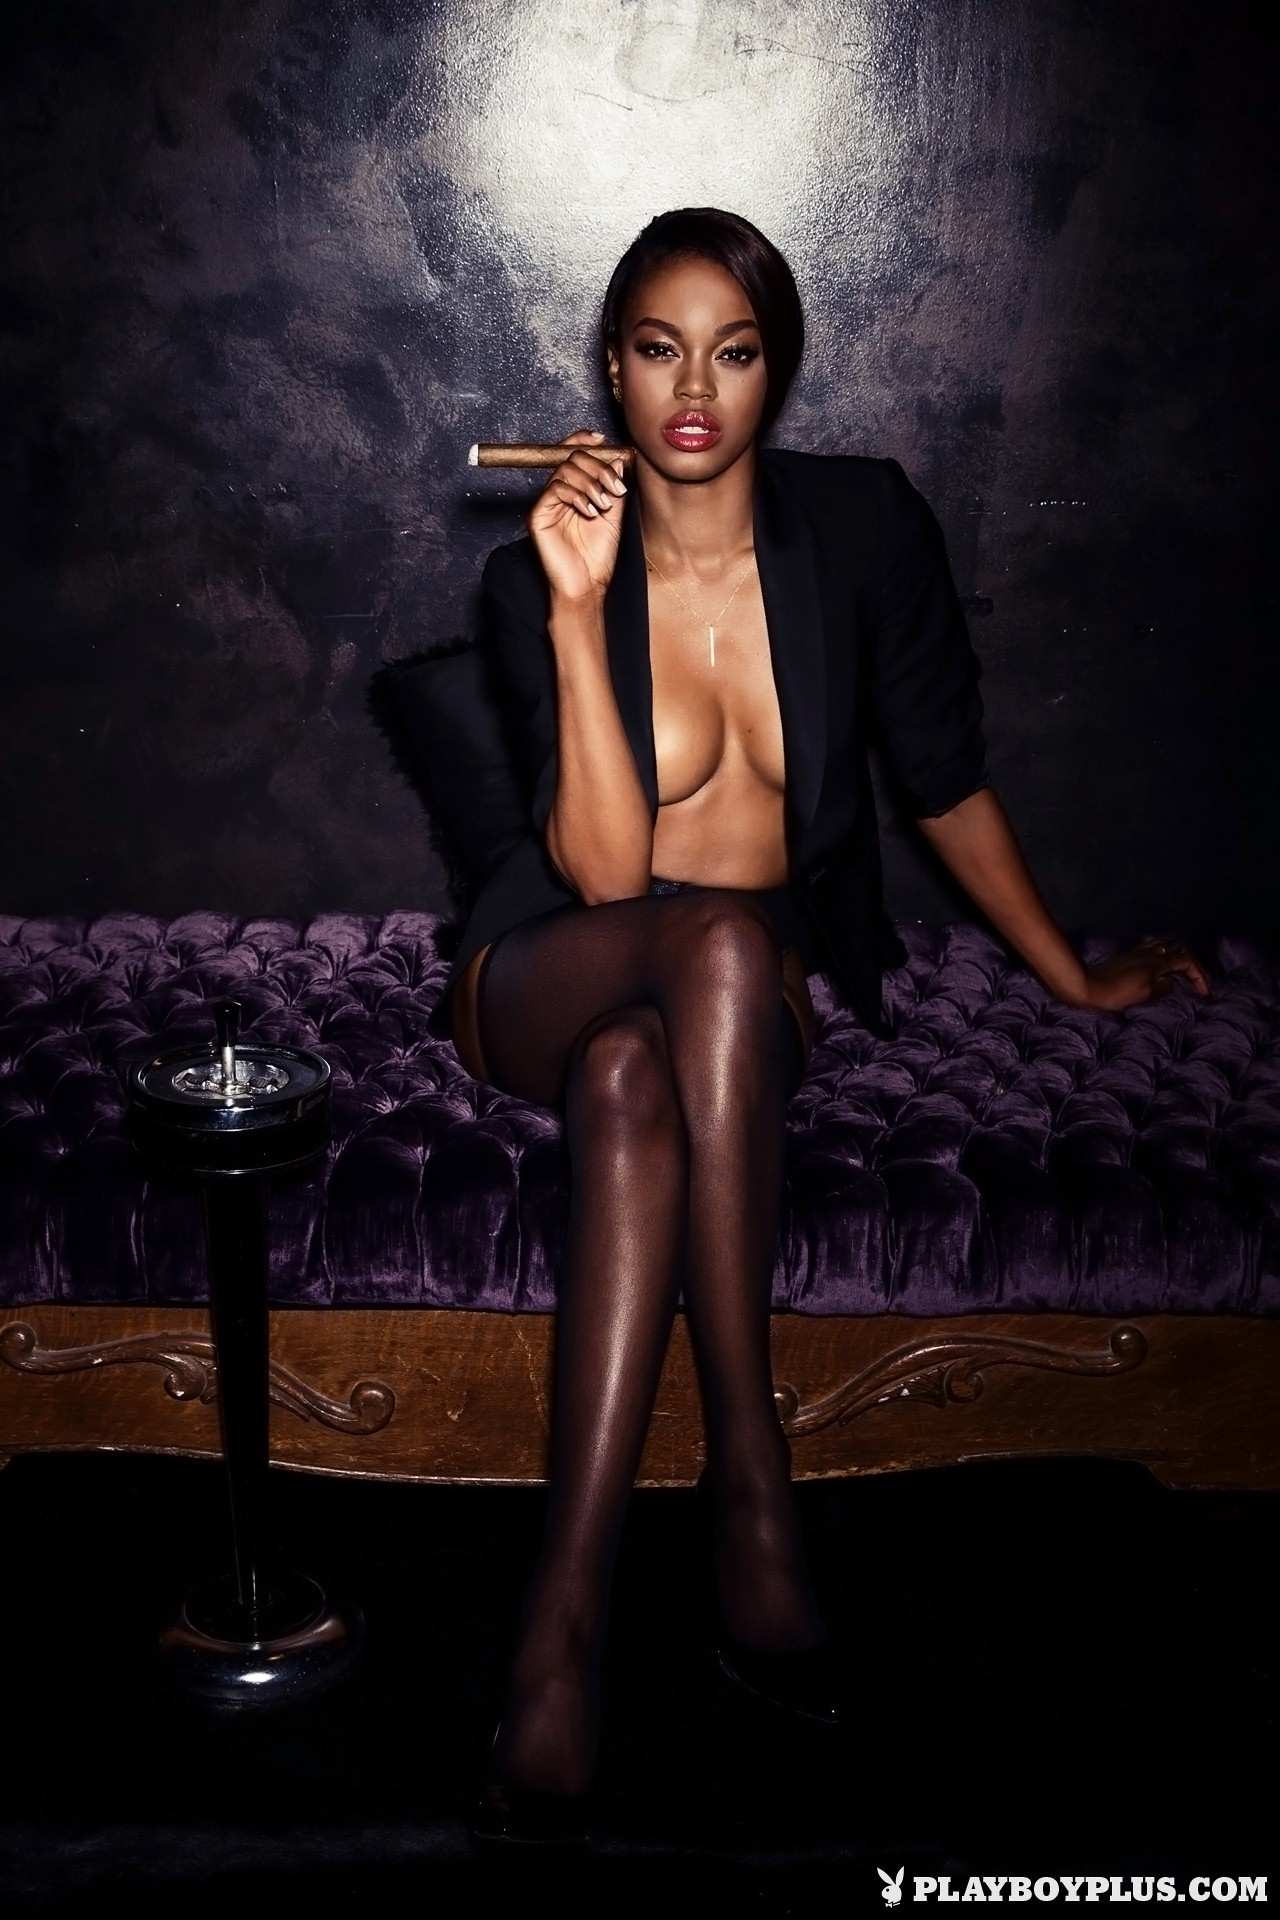 Eugena Washington nude in Oasis for Playboy | Daily Girls @ Female Update